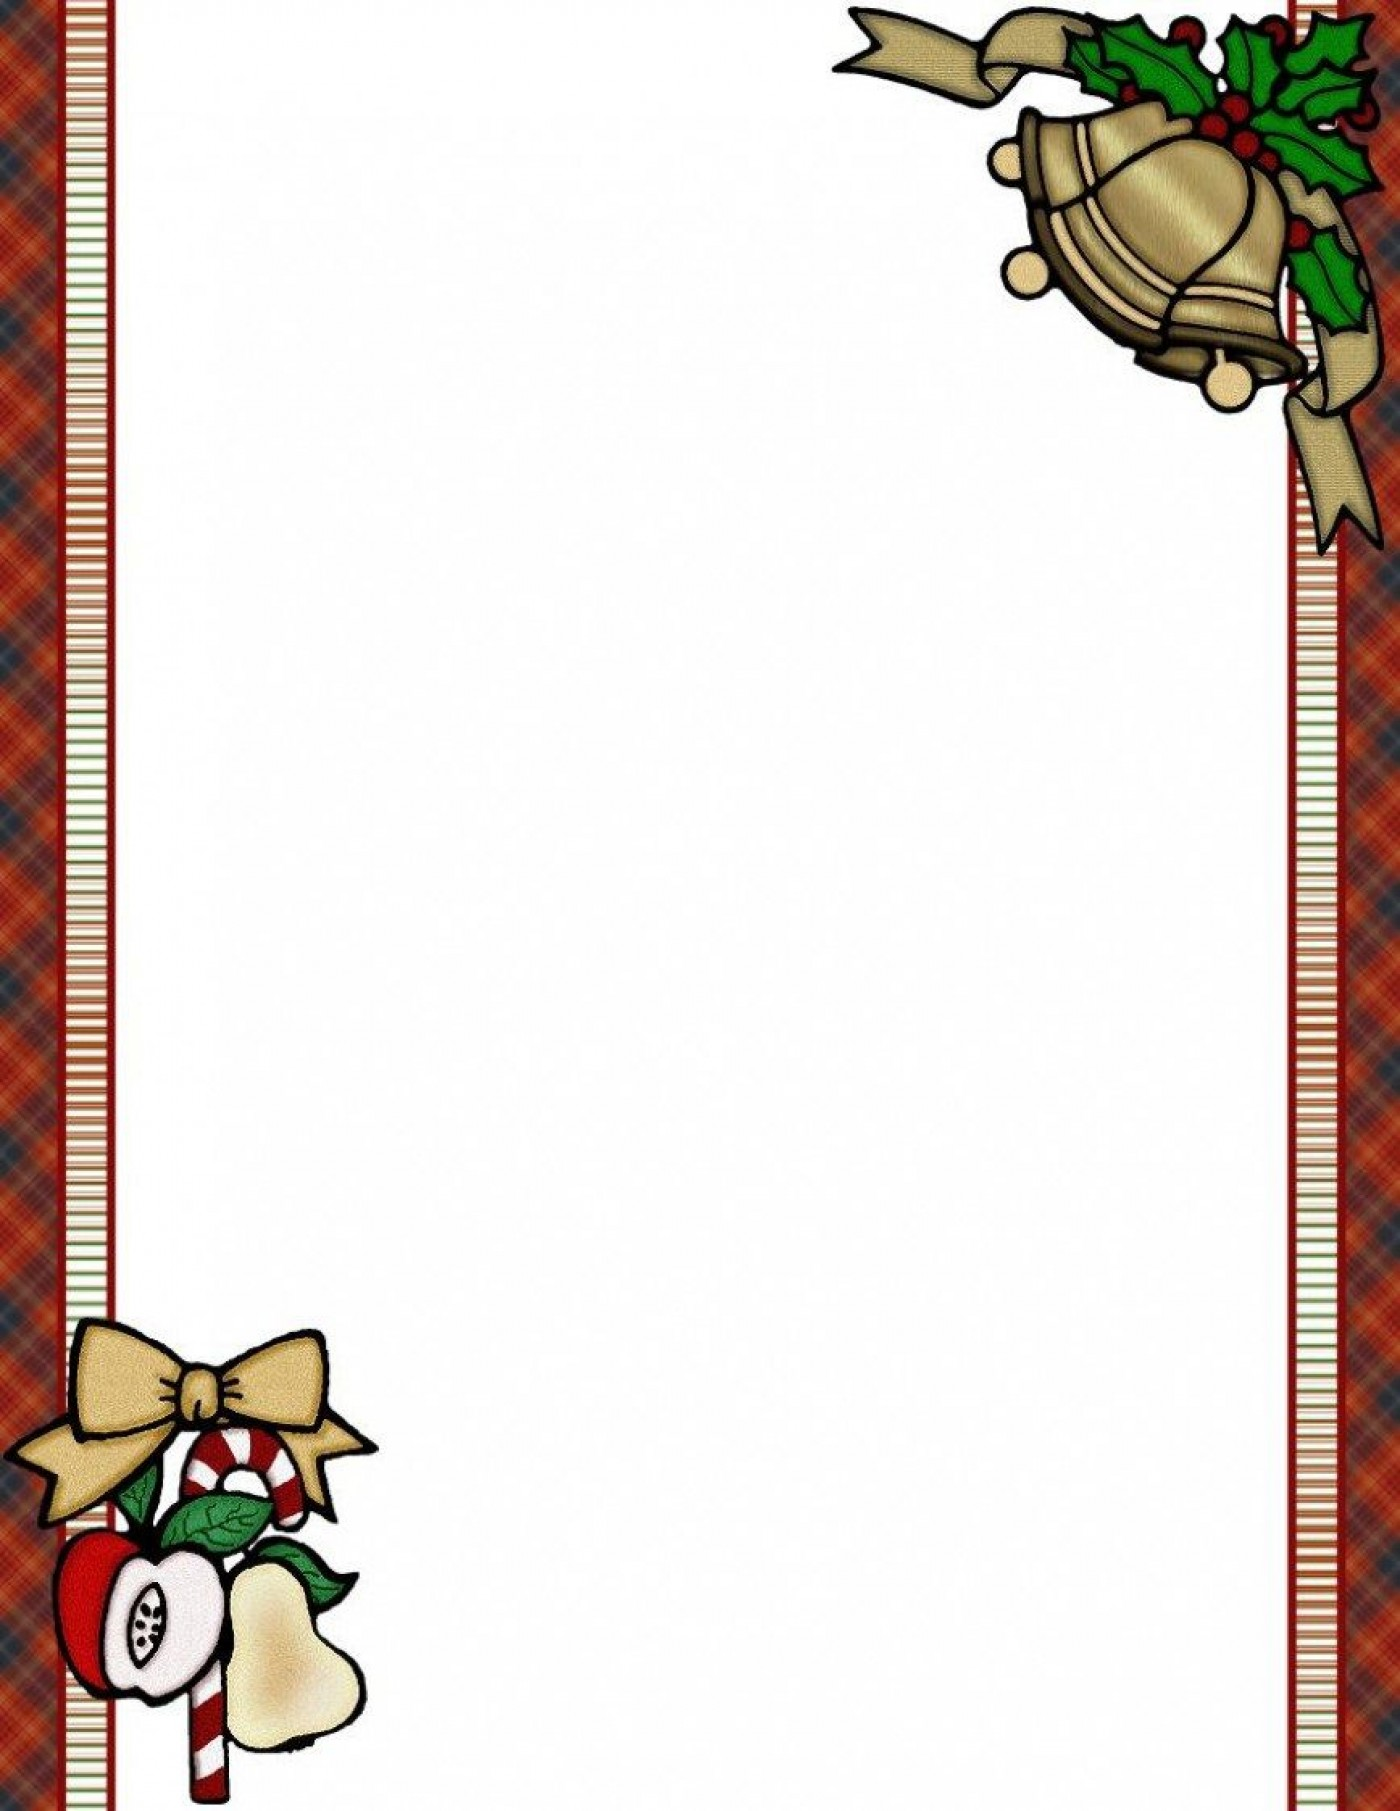 010 Wondrou Christma Stationery Template Word Free Inspiration  Religiou For Downloadable1400